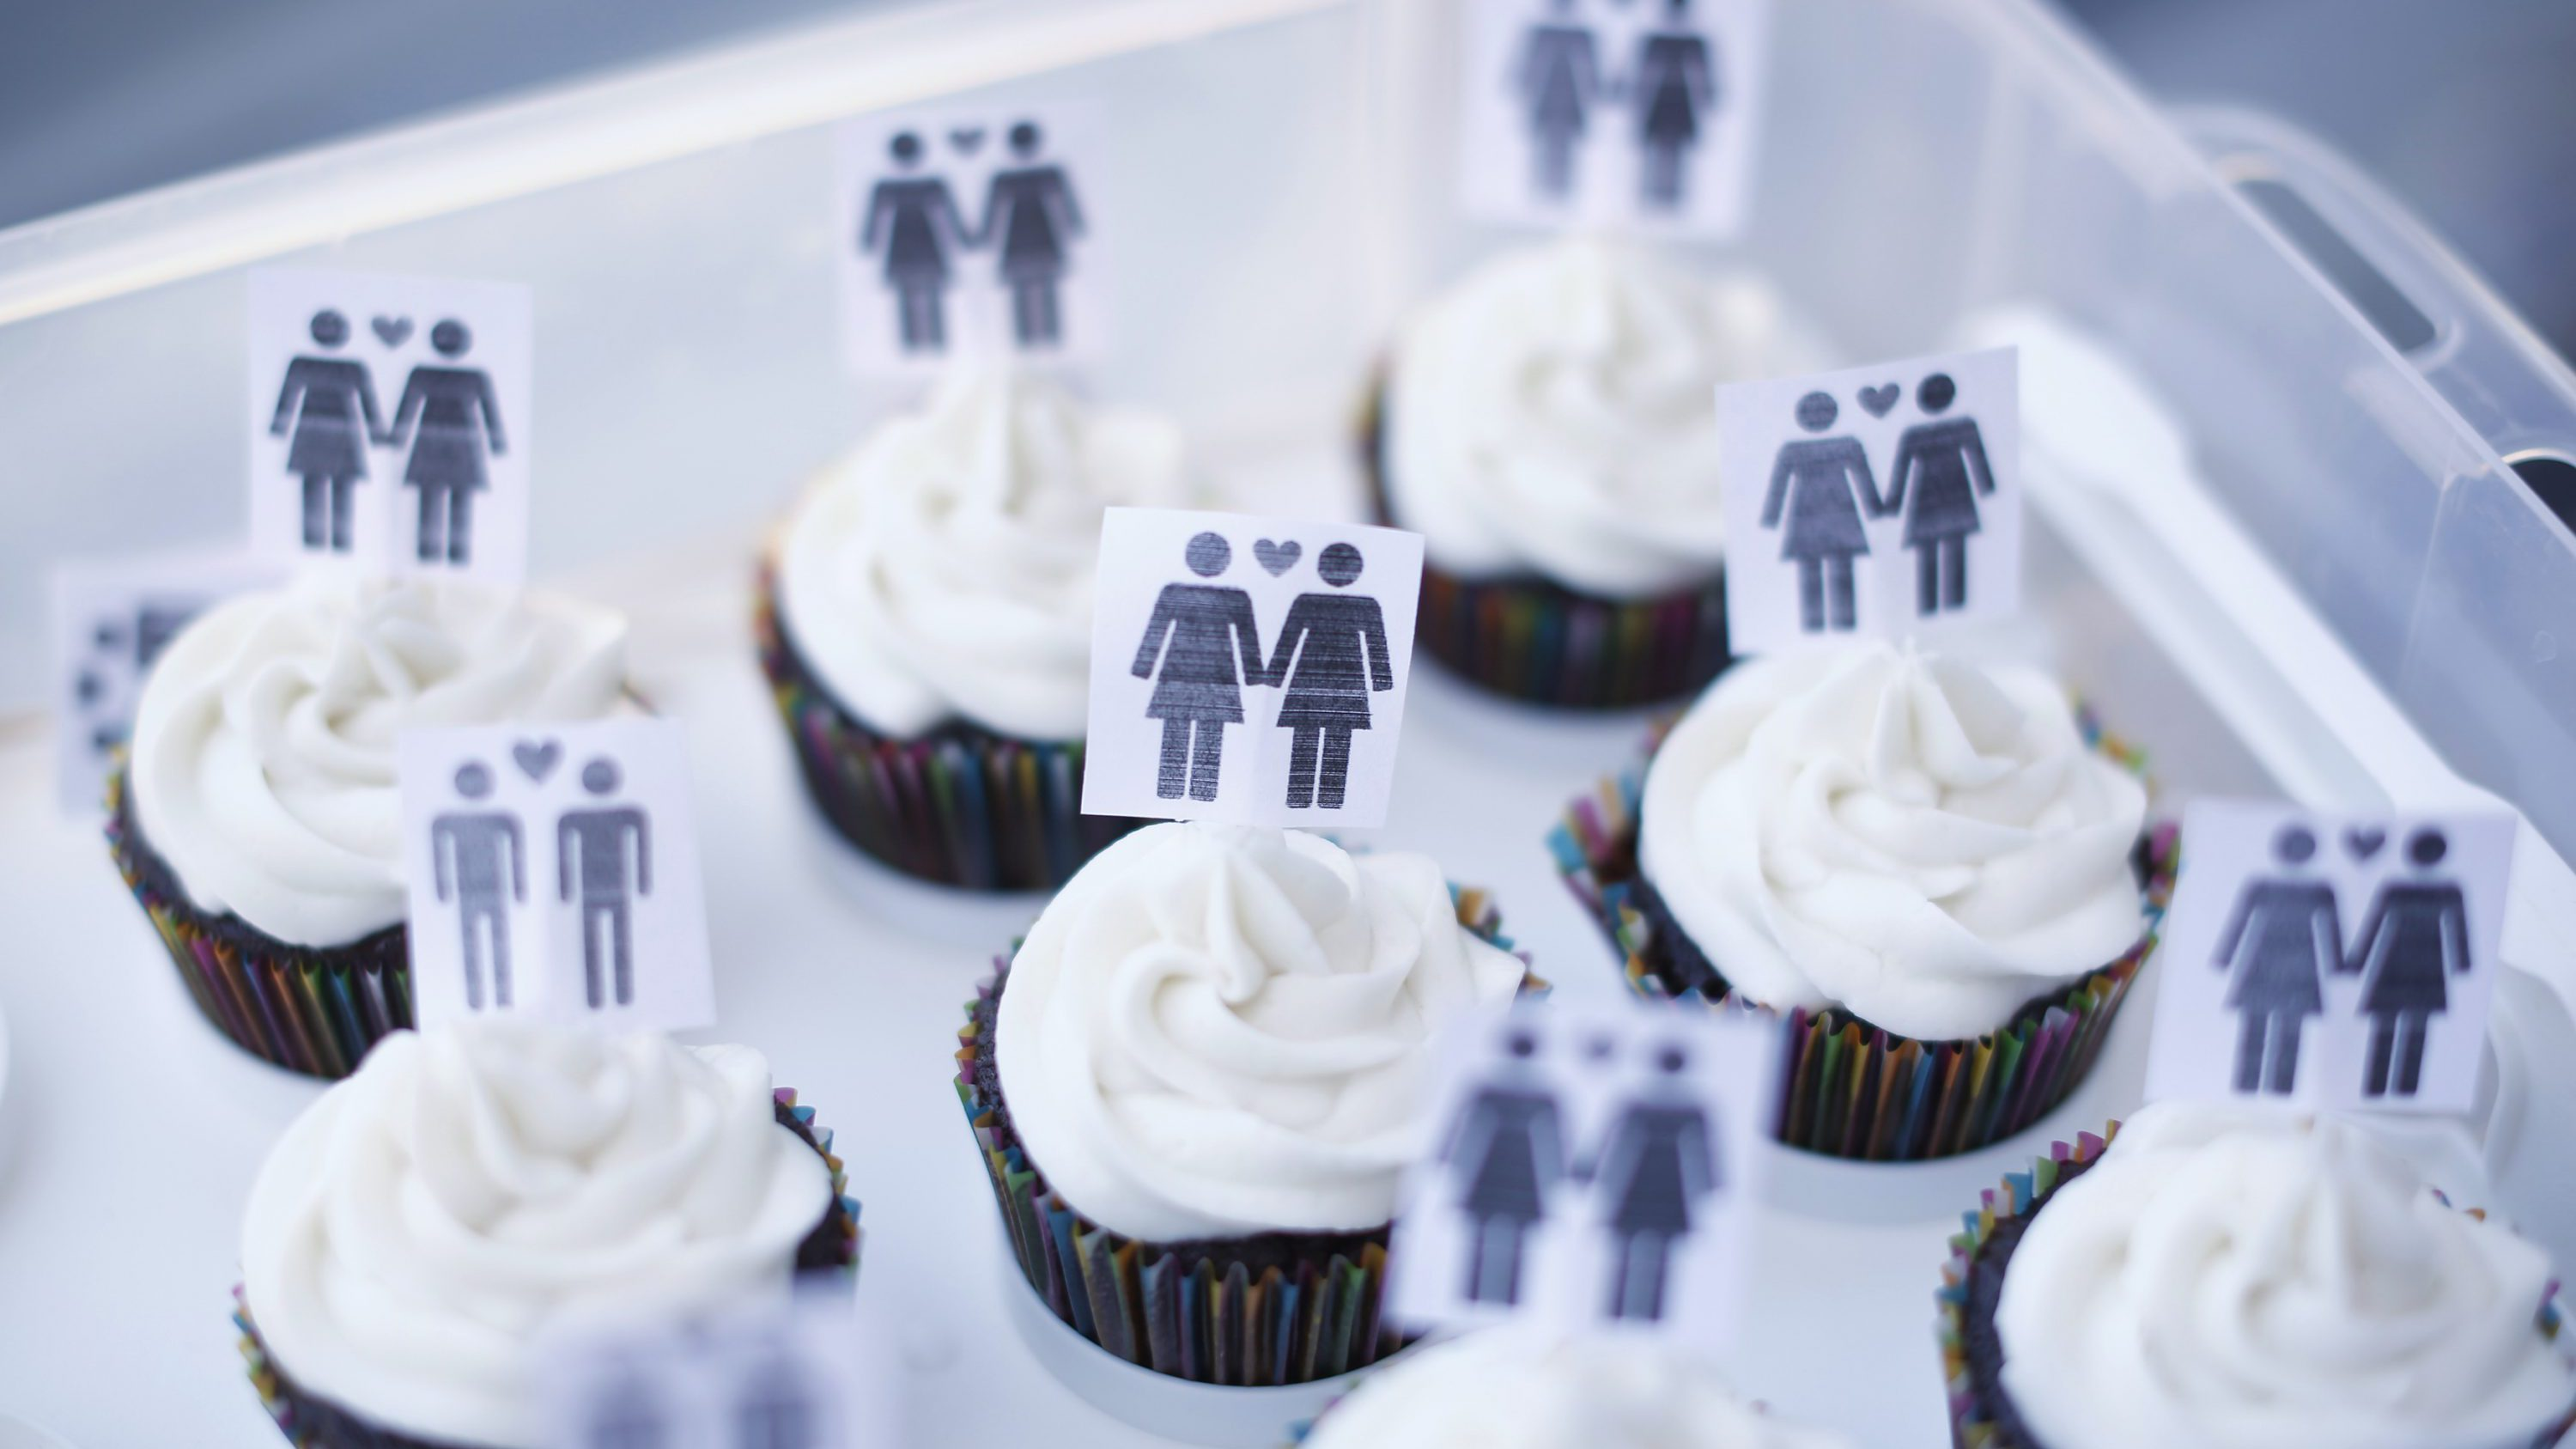 A box of cupcakes are seen topped with icons of same-sex couples at City Hall in San Francisco, June 29, 2013. Same-sex couples rushed to San Francisco's City Hall on Saturday to be legally married after the U.S. Ninth Circuit Court of Appeals officially ended California's ban on gay marriage following a landmark ruling at the Supreme Court this week.